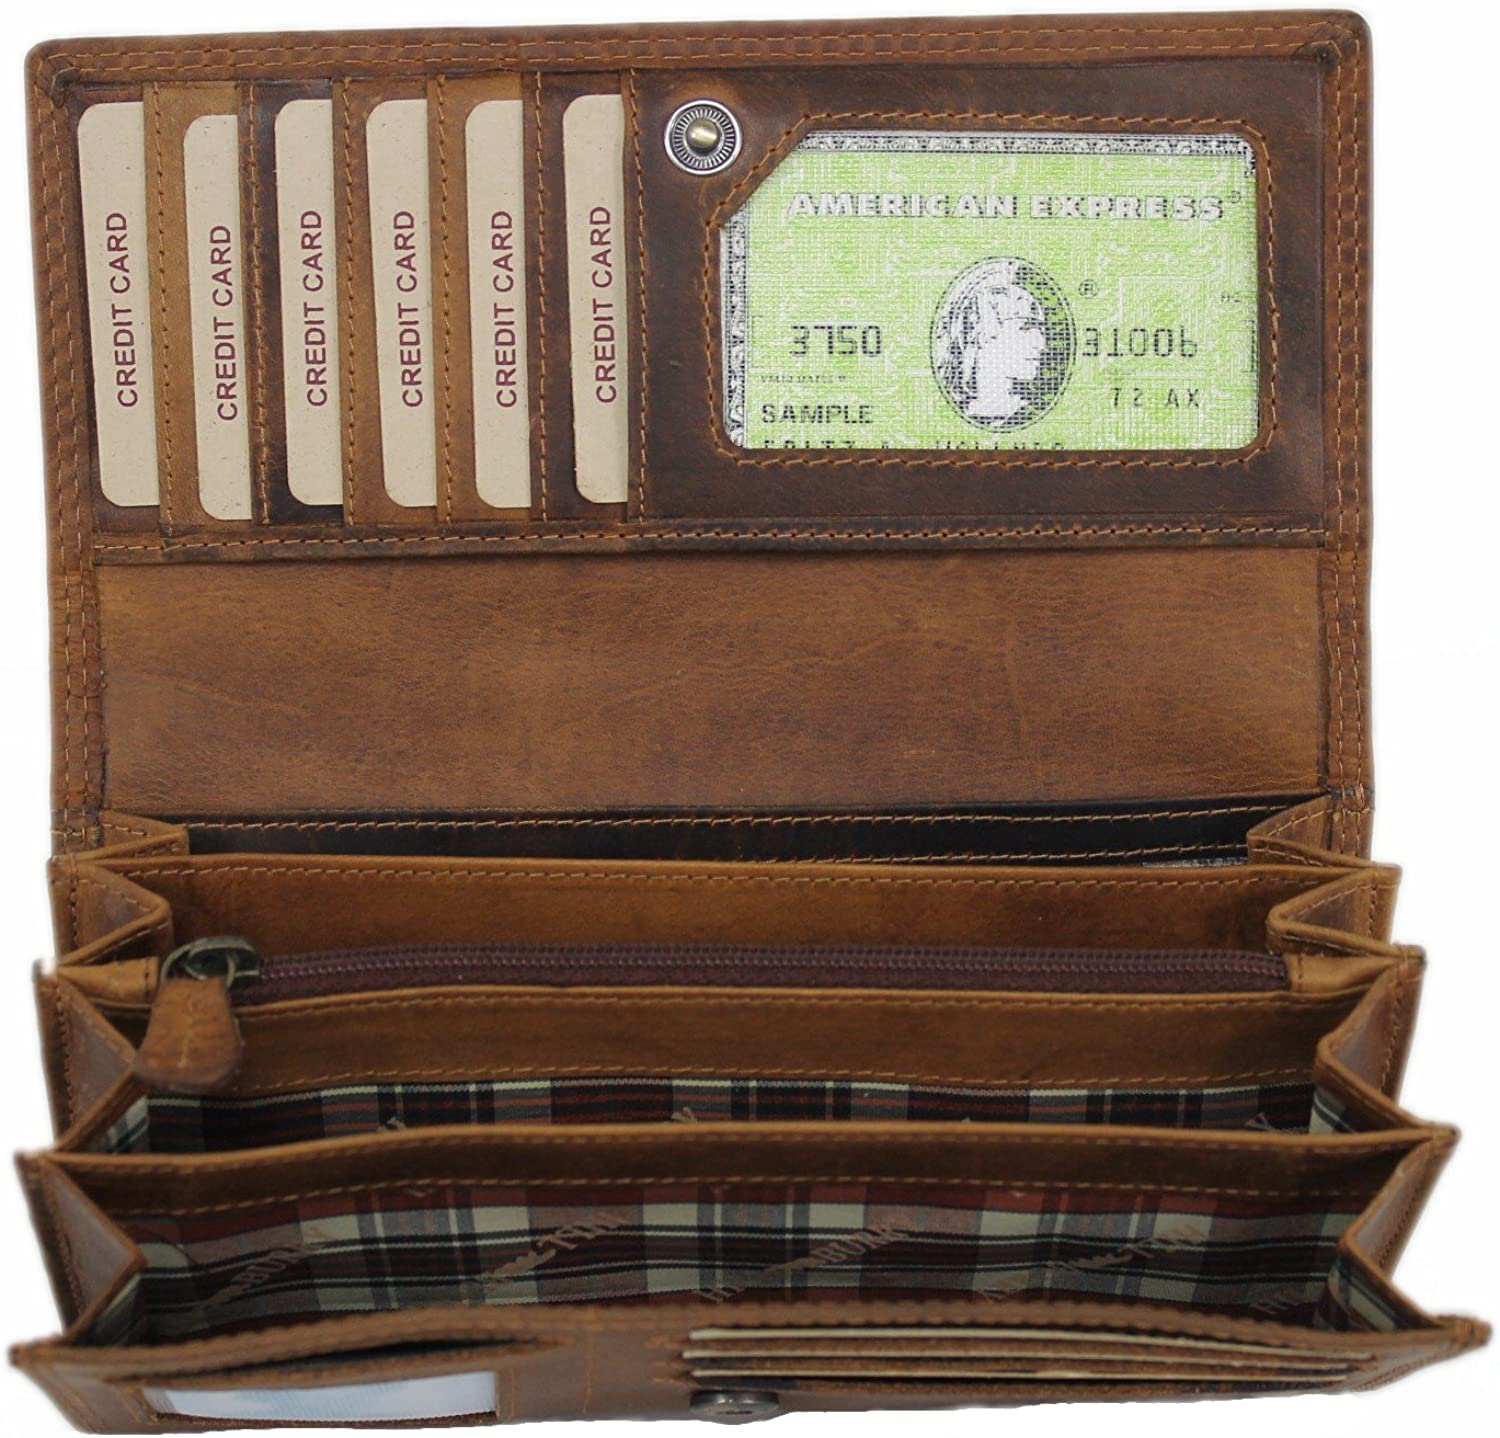 Genuine Leather Women Wallet  Vintage Cowhide Clutch Checkbook Card Holder Organizer  Large Capacity by Hill Burry Eloy